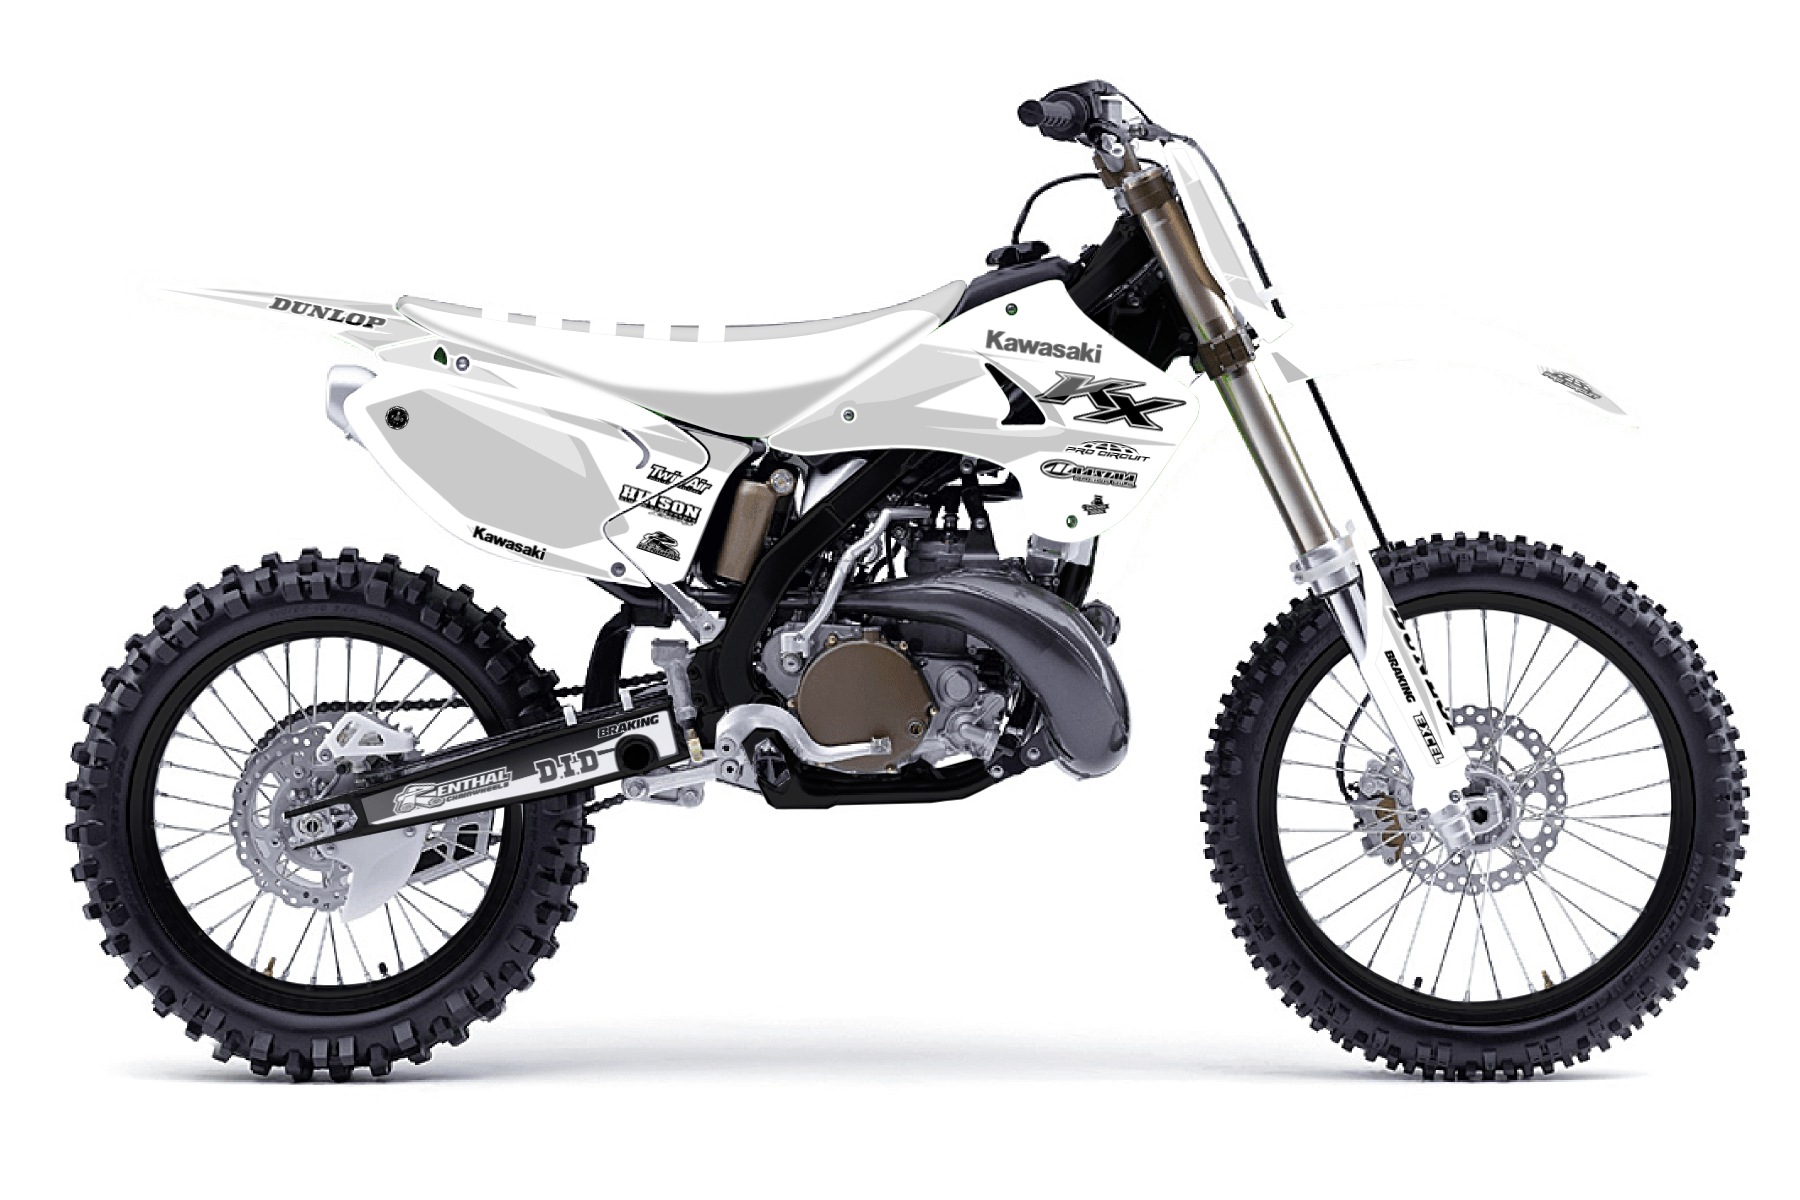 Kawasaki KX250 MX Graphic Kits  The Kawasaki KX 250 is the perfect bike for all those training to become pro. You got to love the quality and power of this bike.